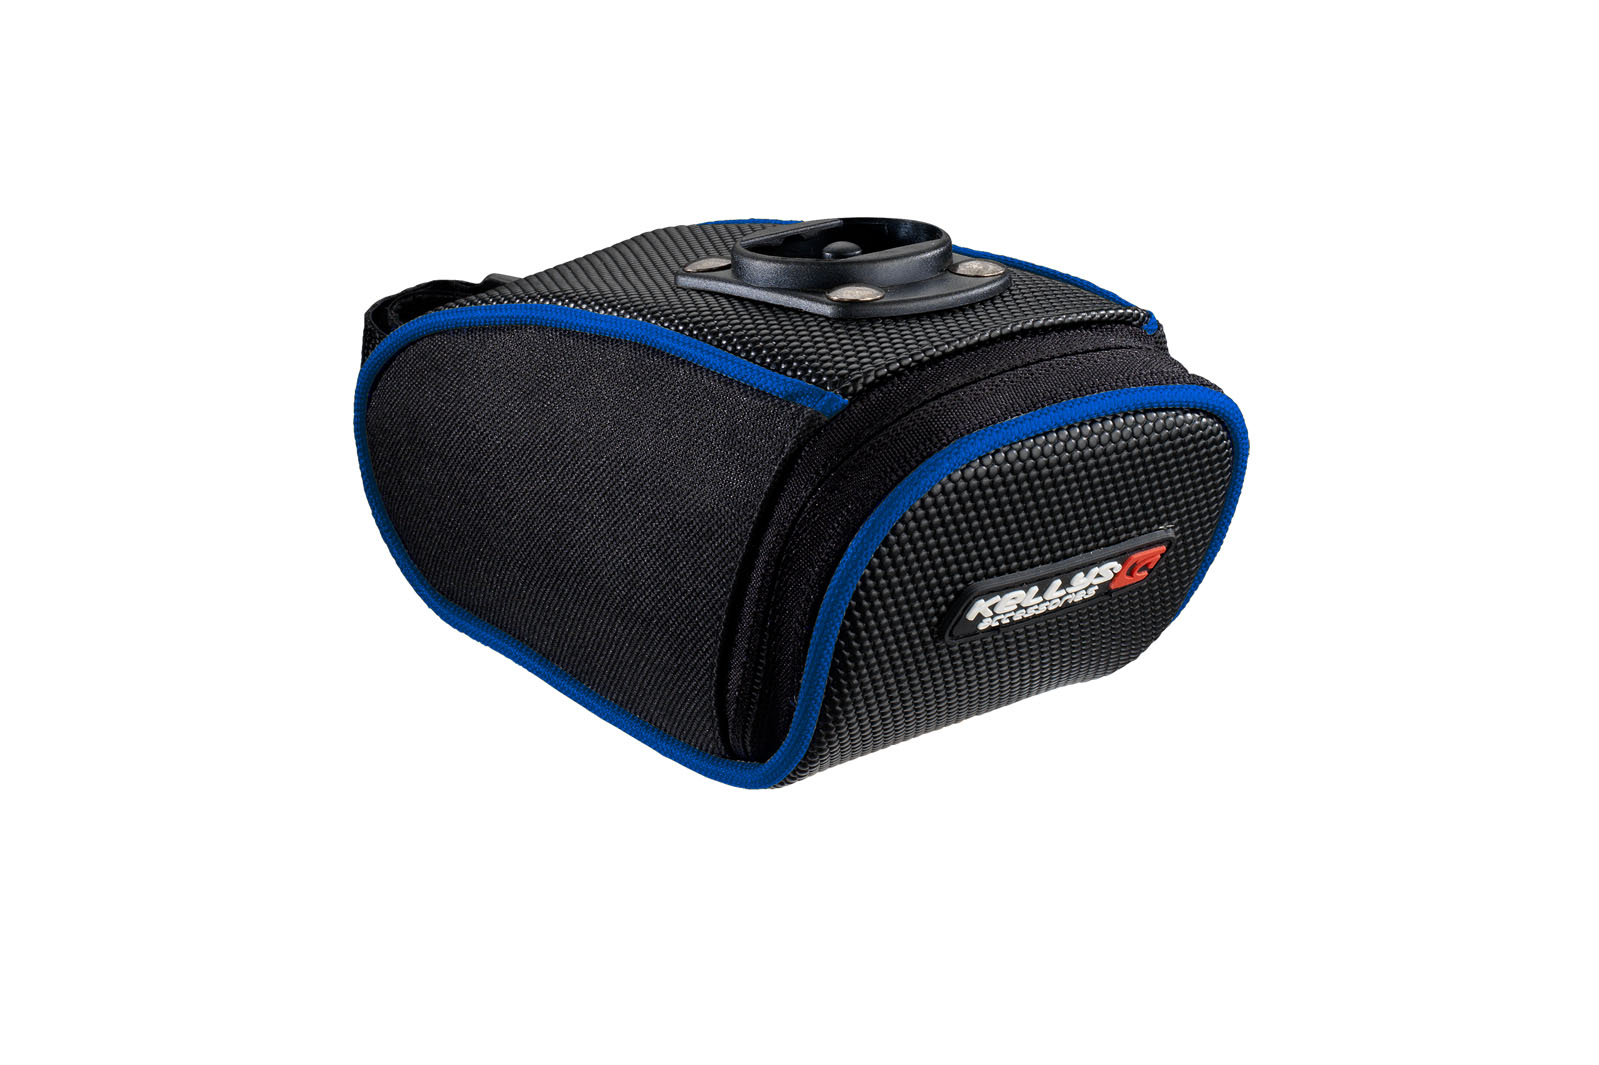 Satteltasche CHILLI black-blue - Satteltasche CHILLI black-blue